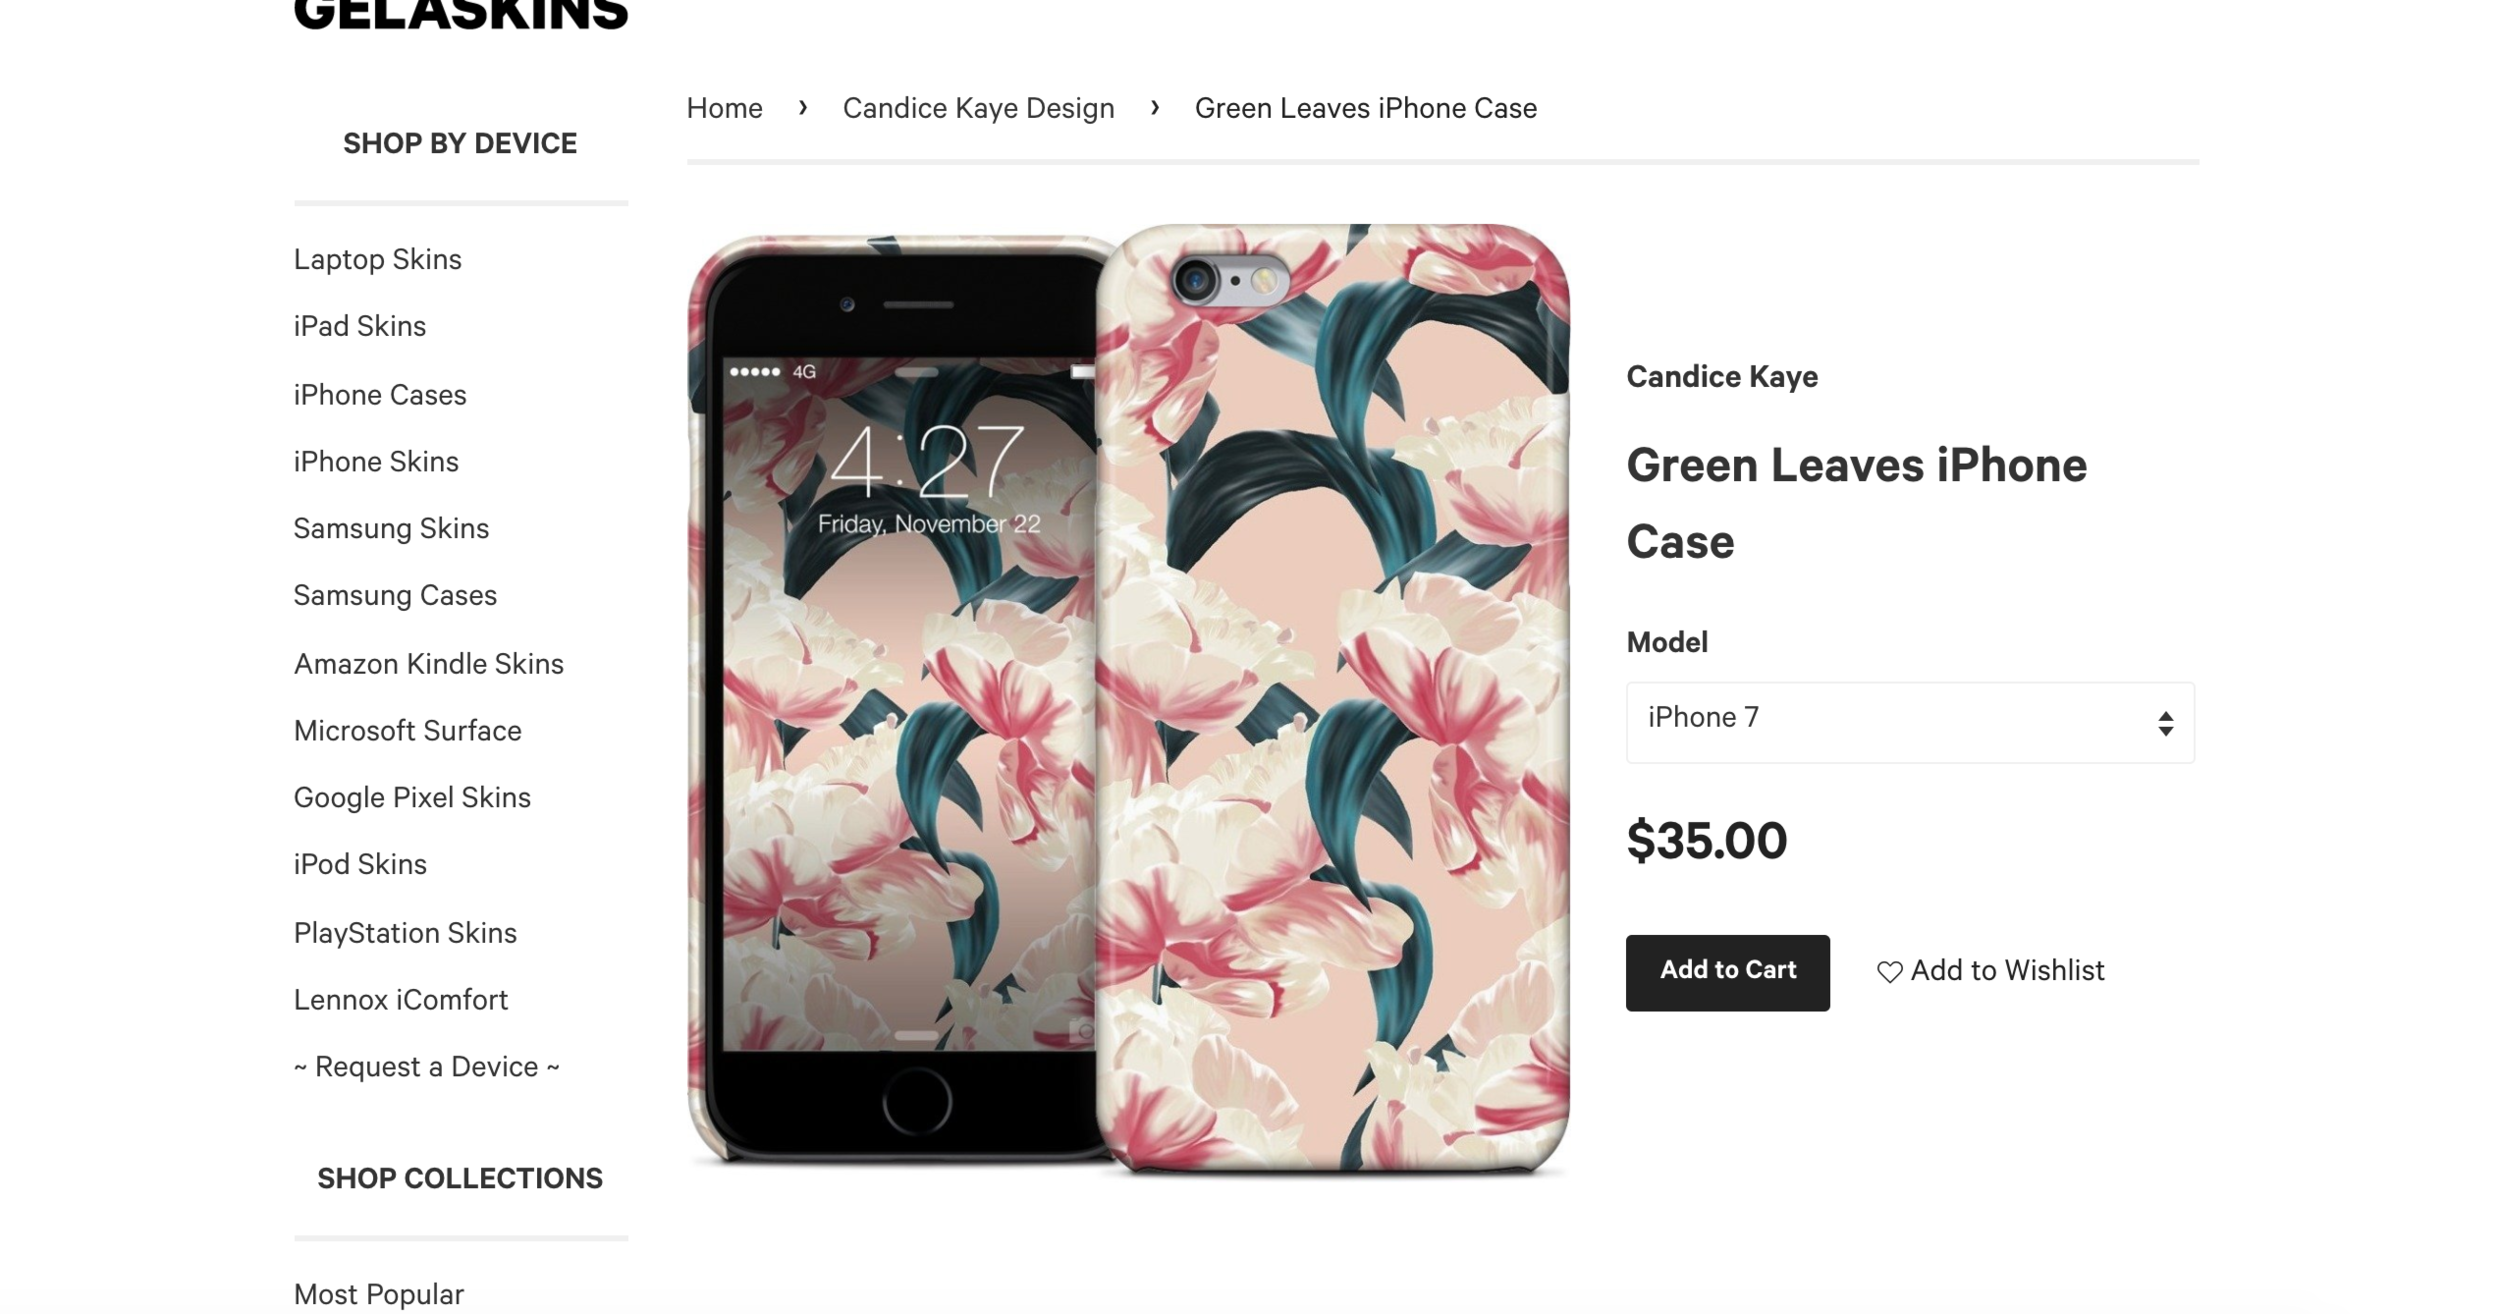 candicekayedesign_pinkfloral.png